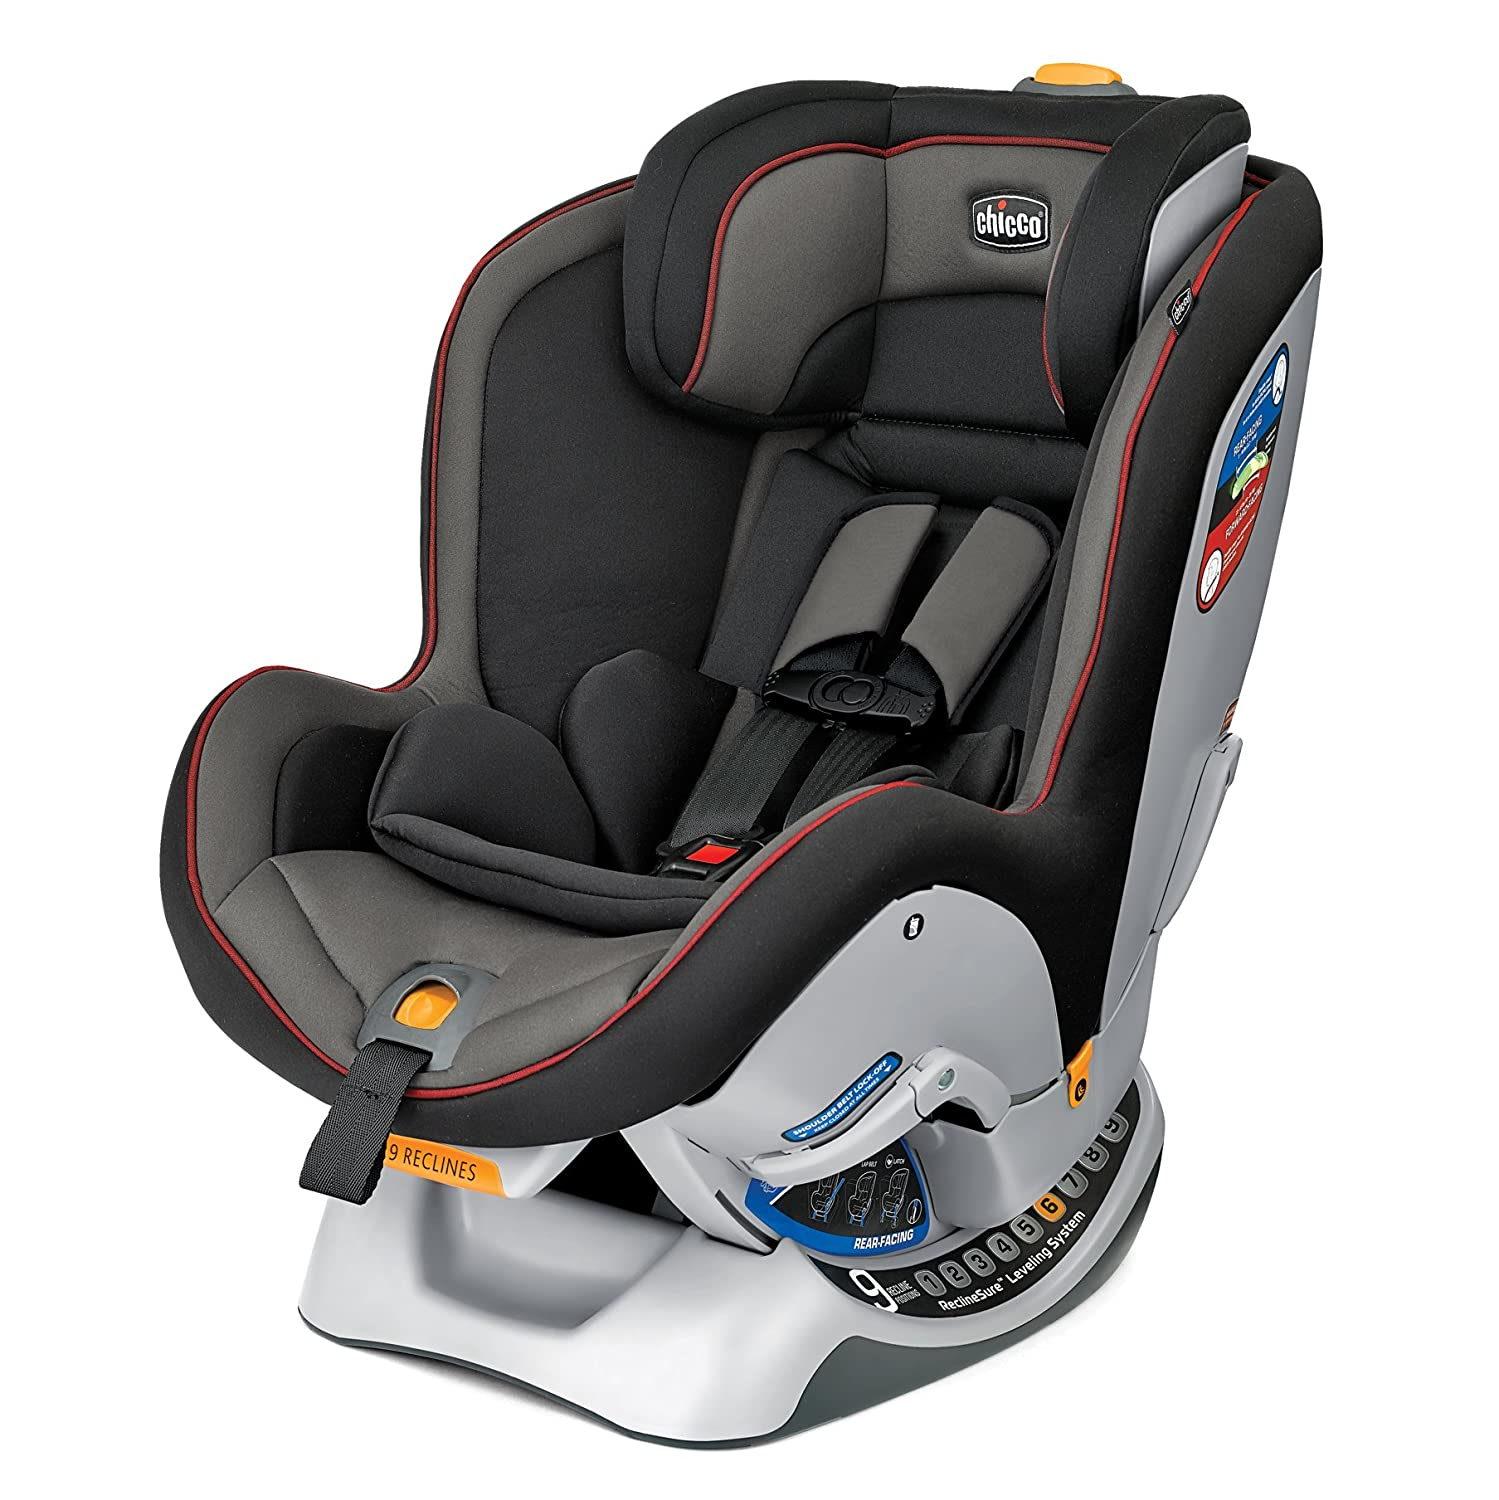 Chicco NextFit Convertible Car Seat-Mystique at Sears.com